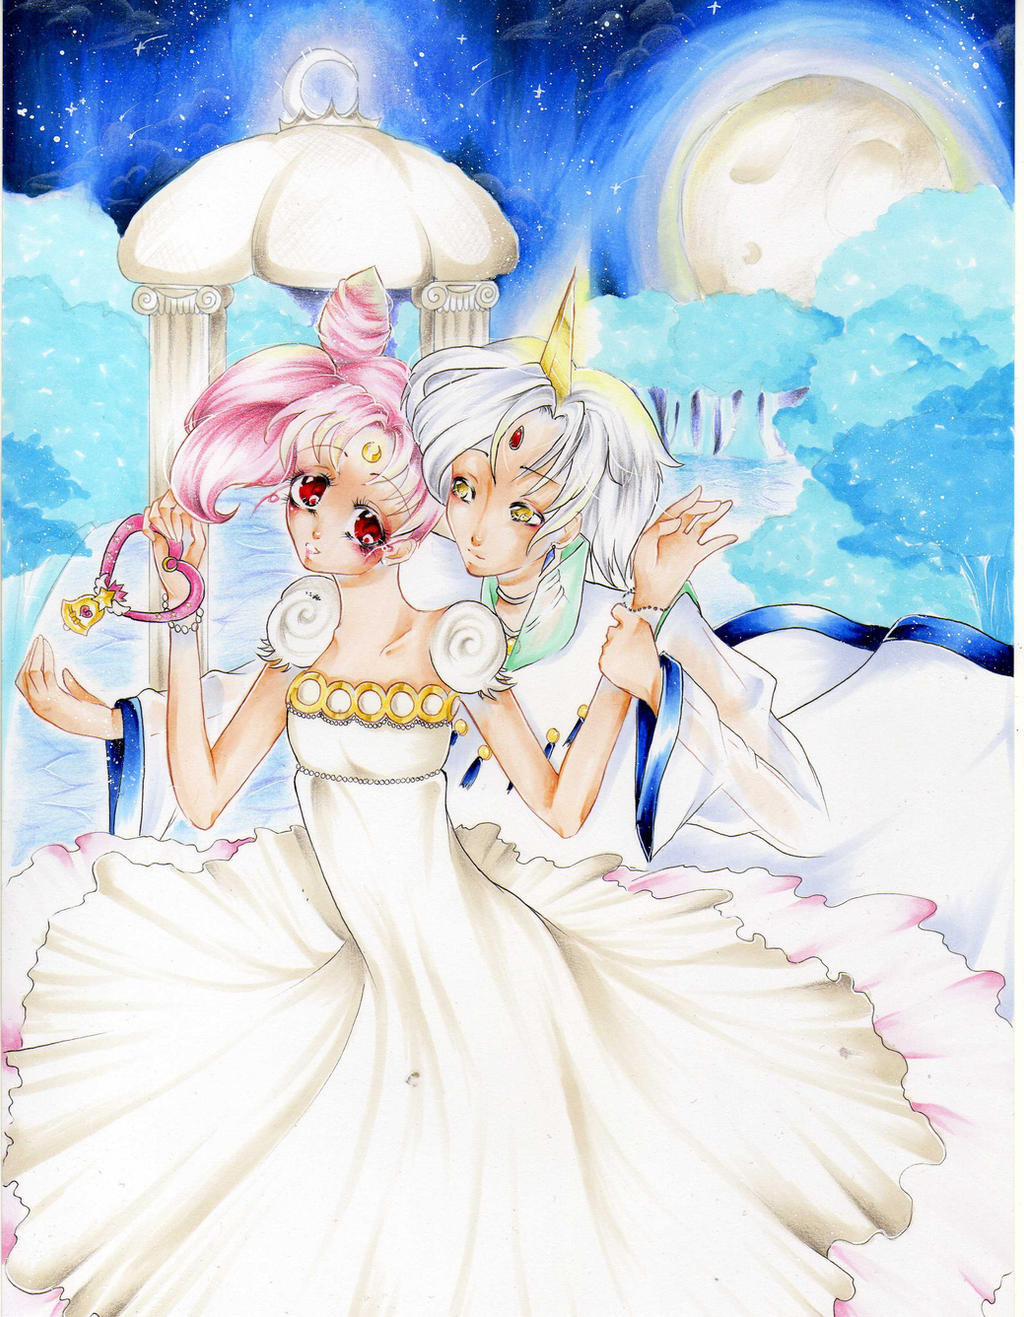 Piper Milton Ernest P05470 moreover Nyarlathotep The Crawling Chaos 511011698 besides 235414230 in addition Ember Deluxe Fanart 659978118 also Kirby Mario And Luigi Dream Team Style 468416749. on dream art drawings